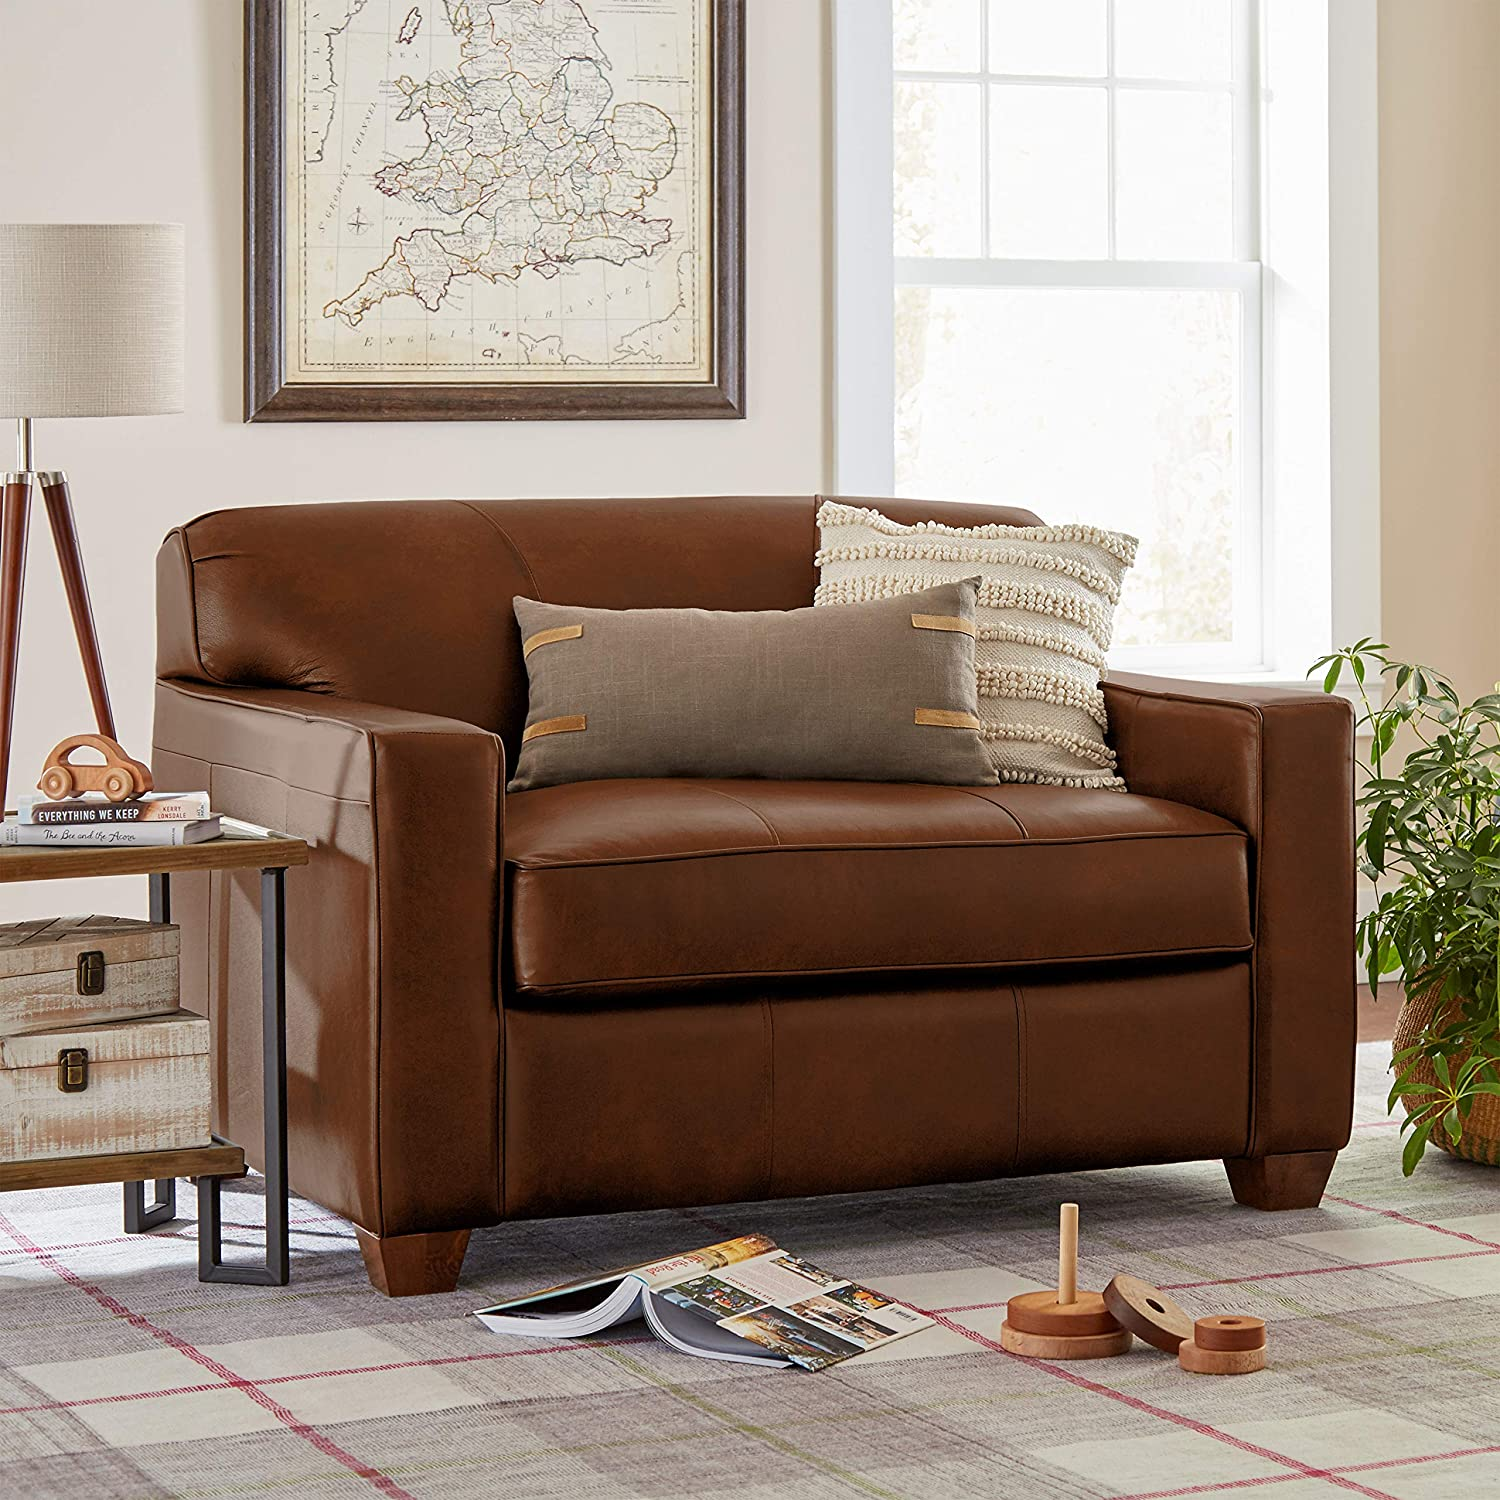 Timeless Chestnut Leather Pull-Out Chair